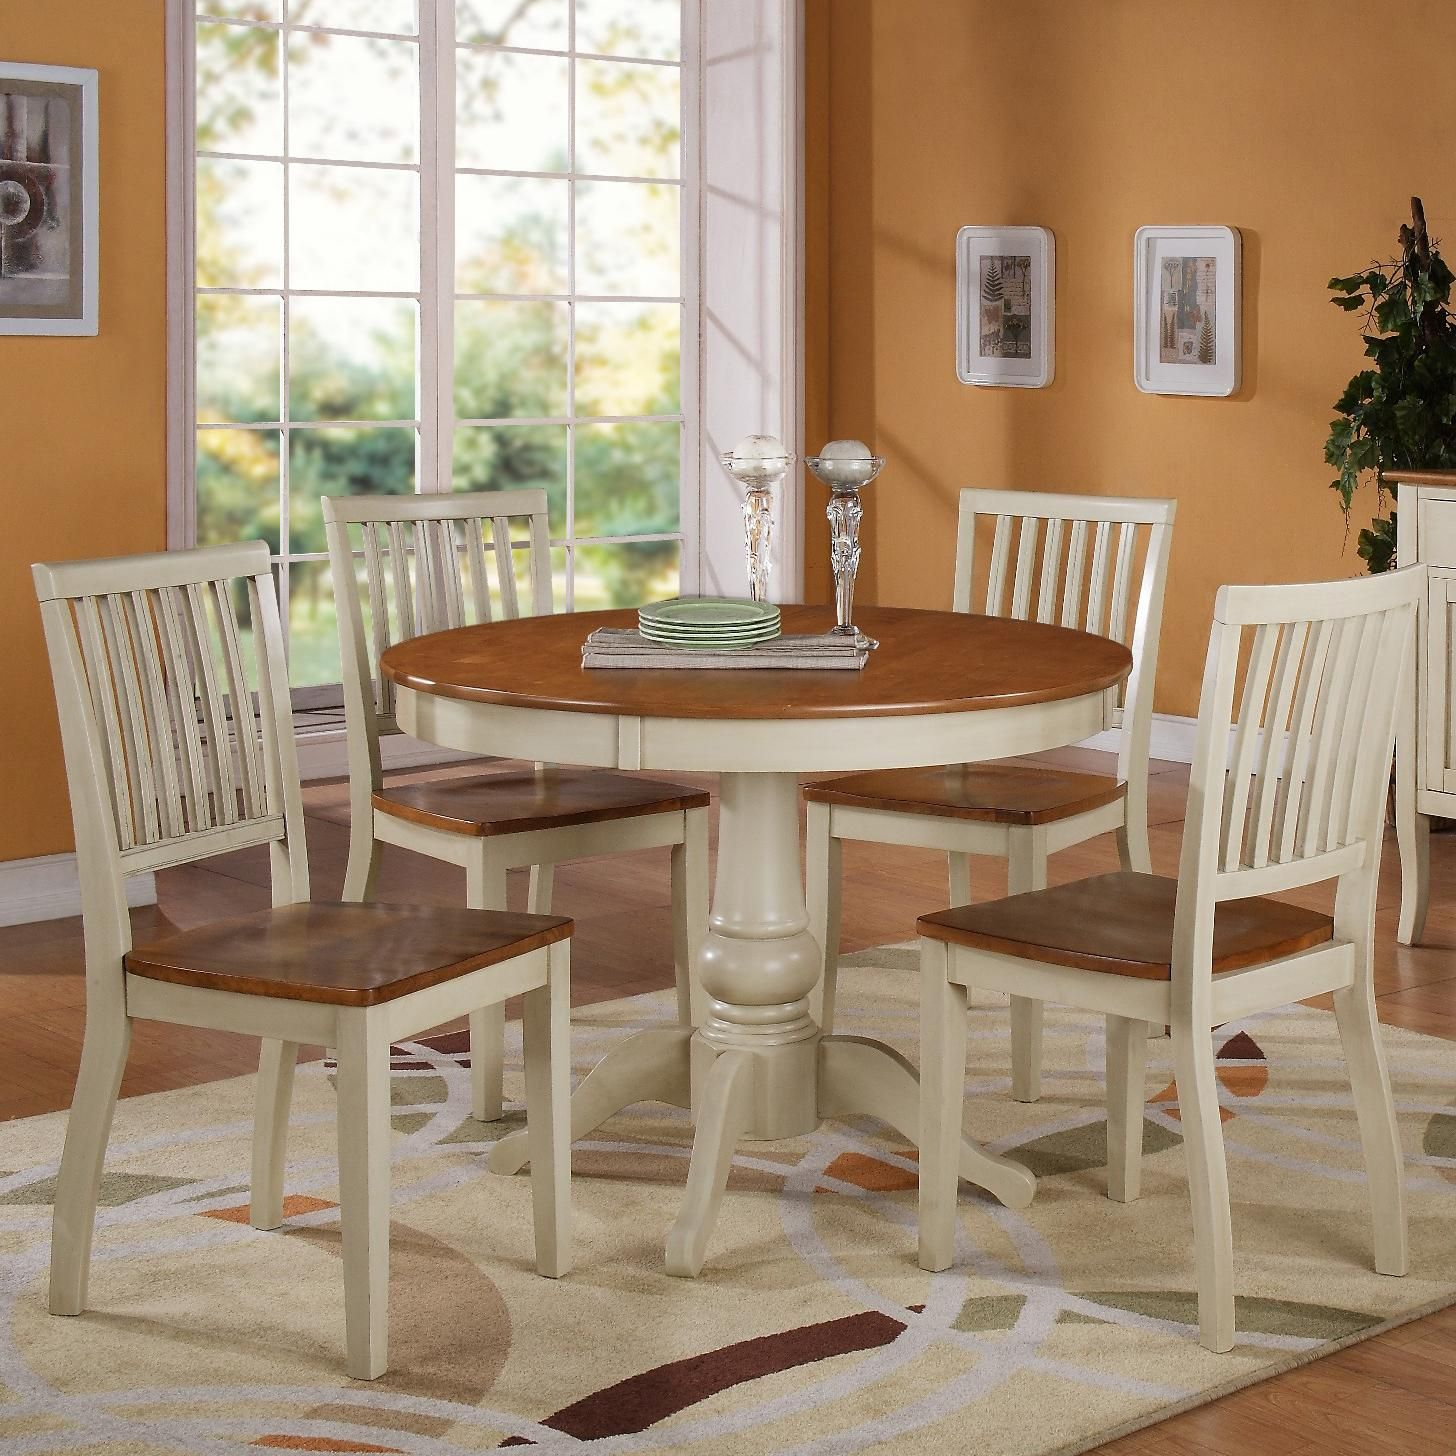 5pc Round Pedestal Drop Leaf Kitchen Table 4 Chairs: Candice 5 Pc. Pedestal Table With Chair Dining Set By